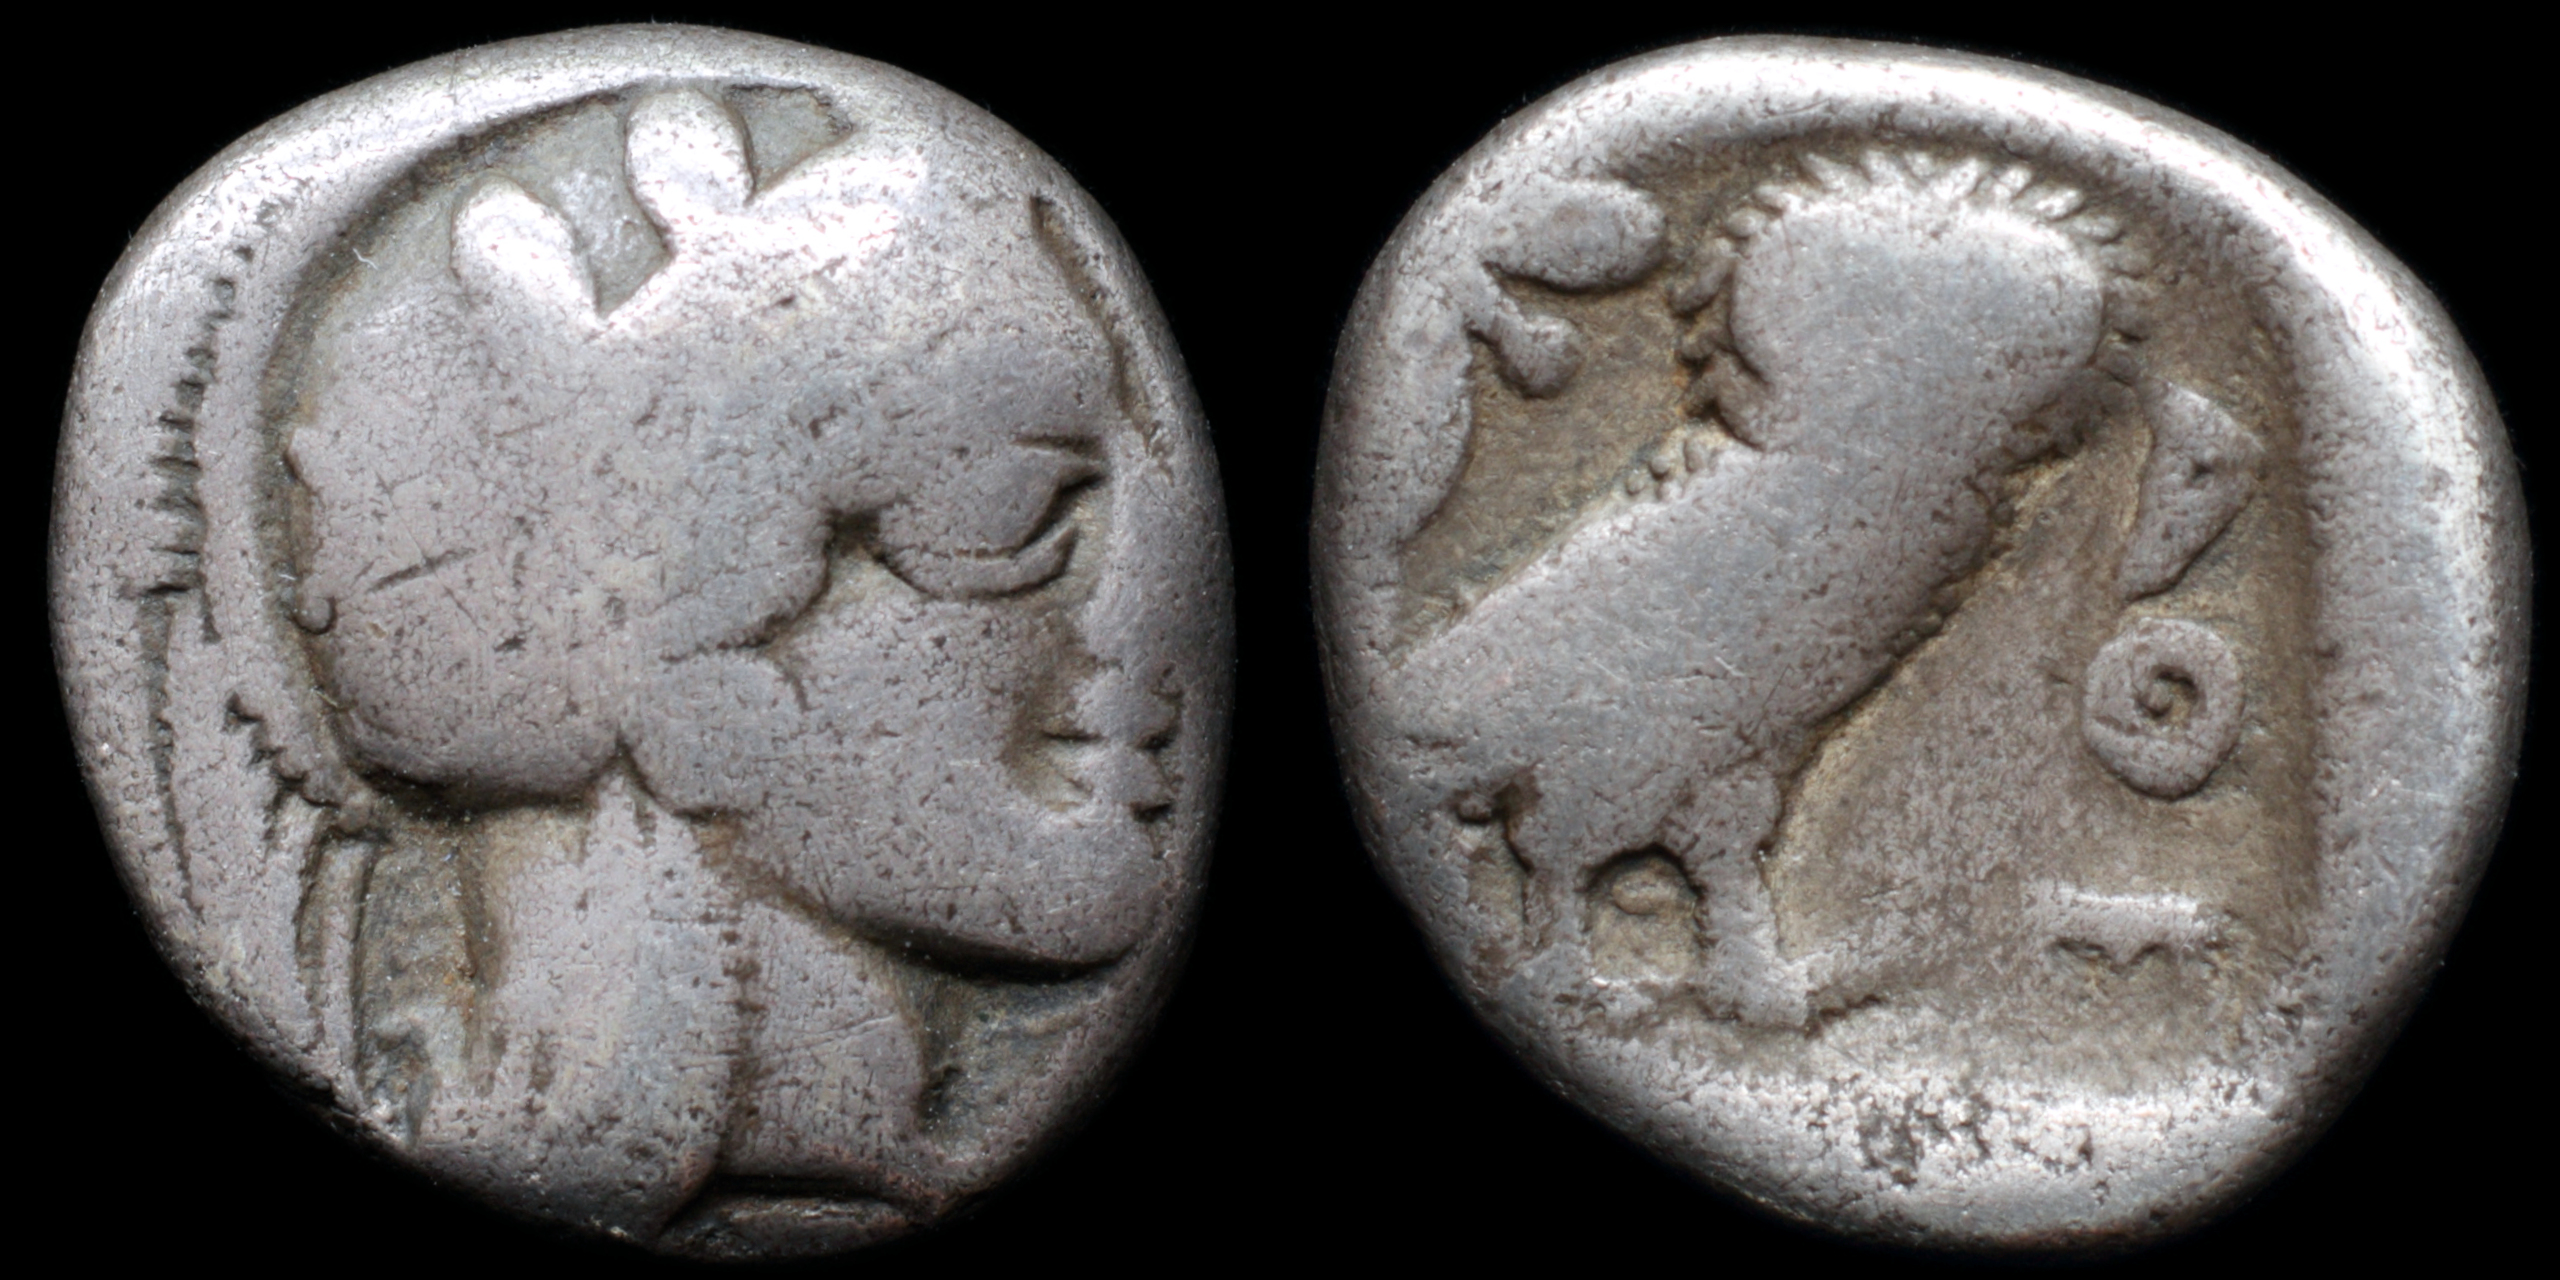 /Files/Images/Coinsite/CoinDB/1452_Athens_drachm.jpg